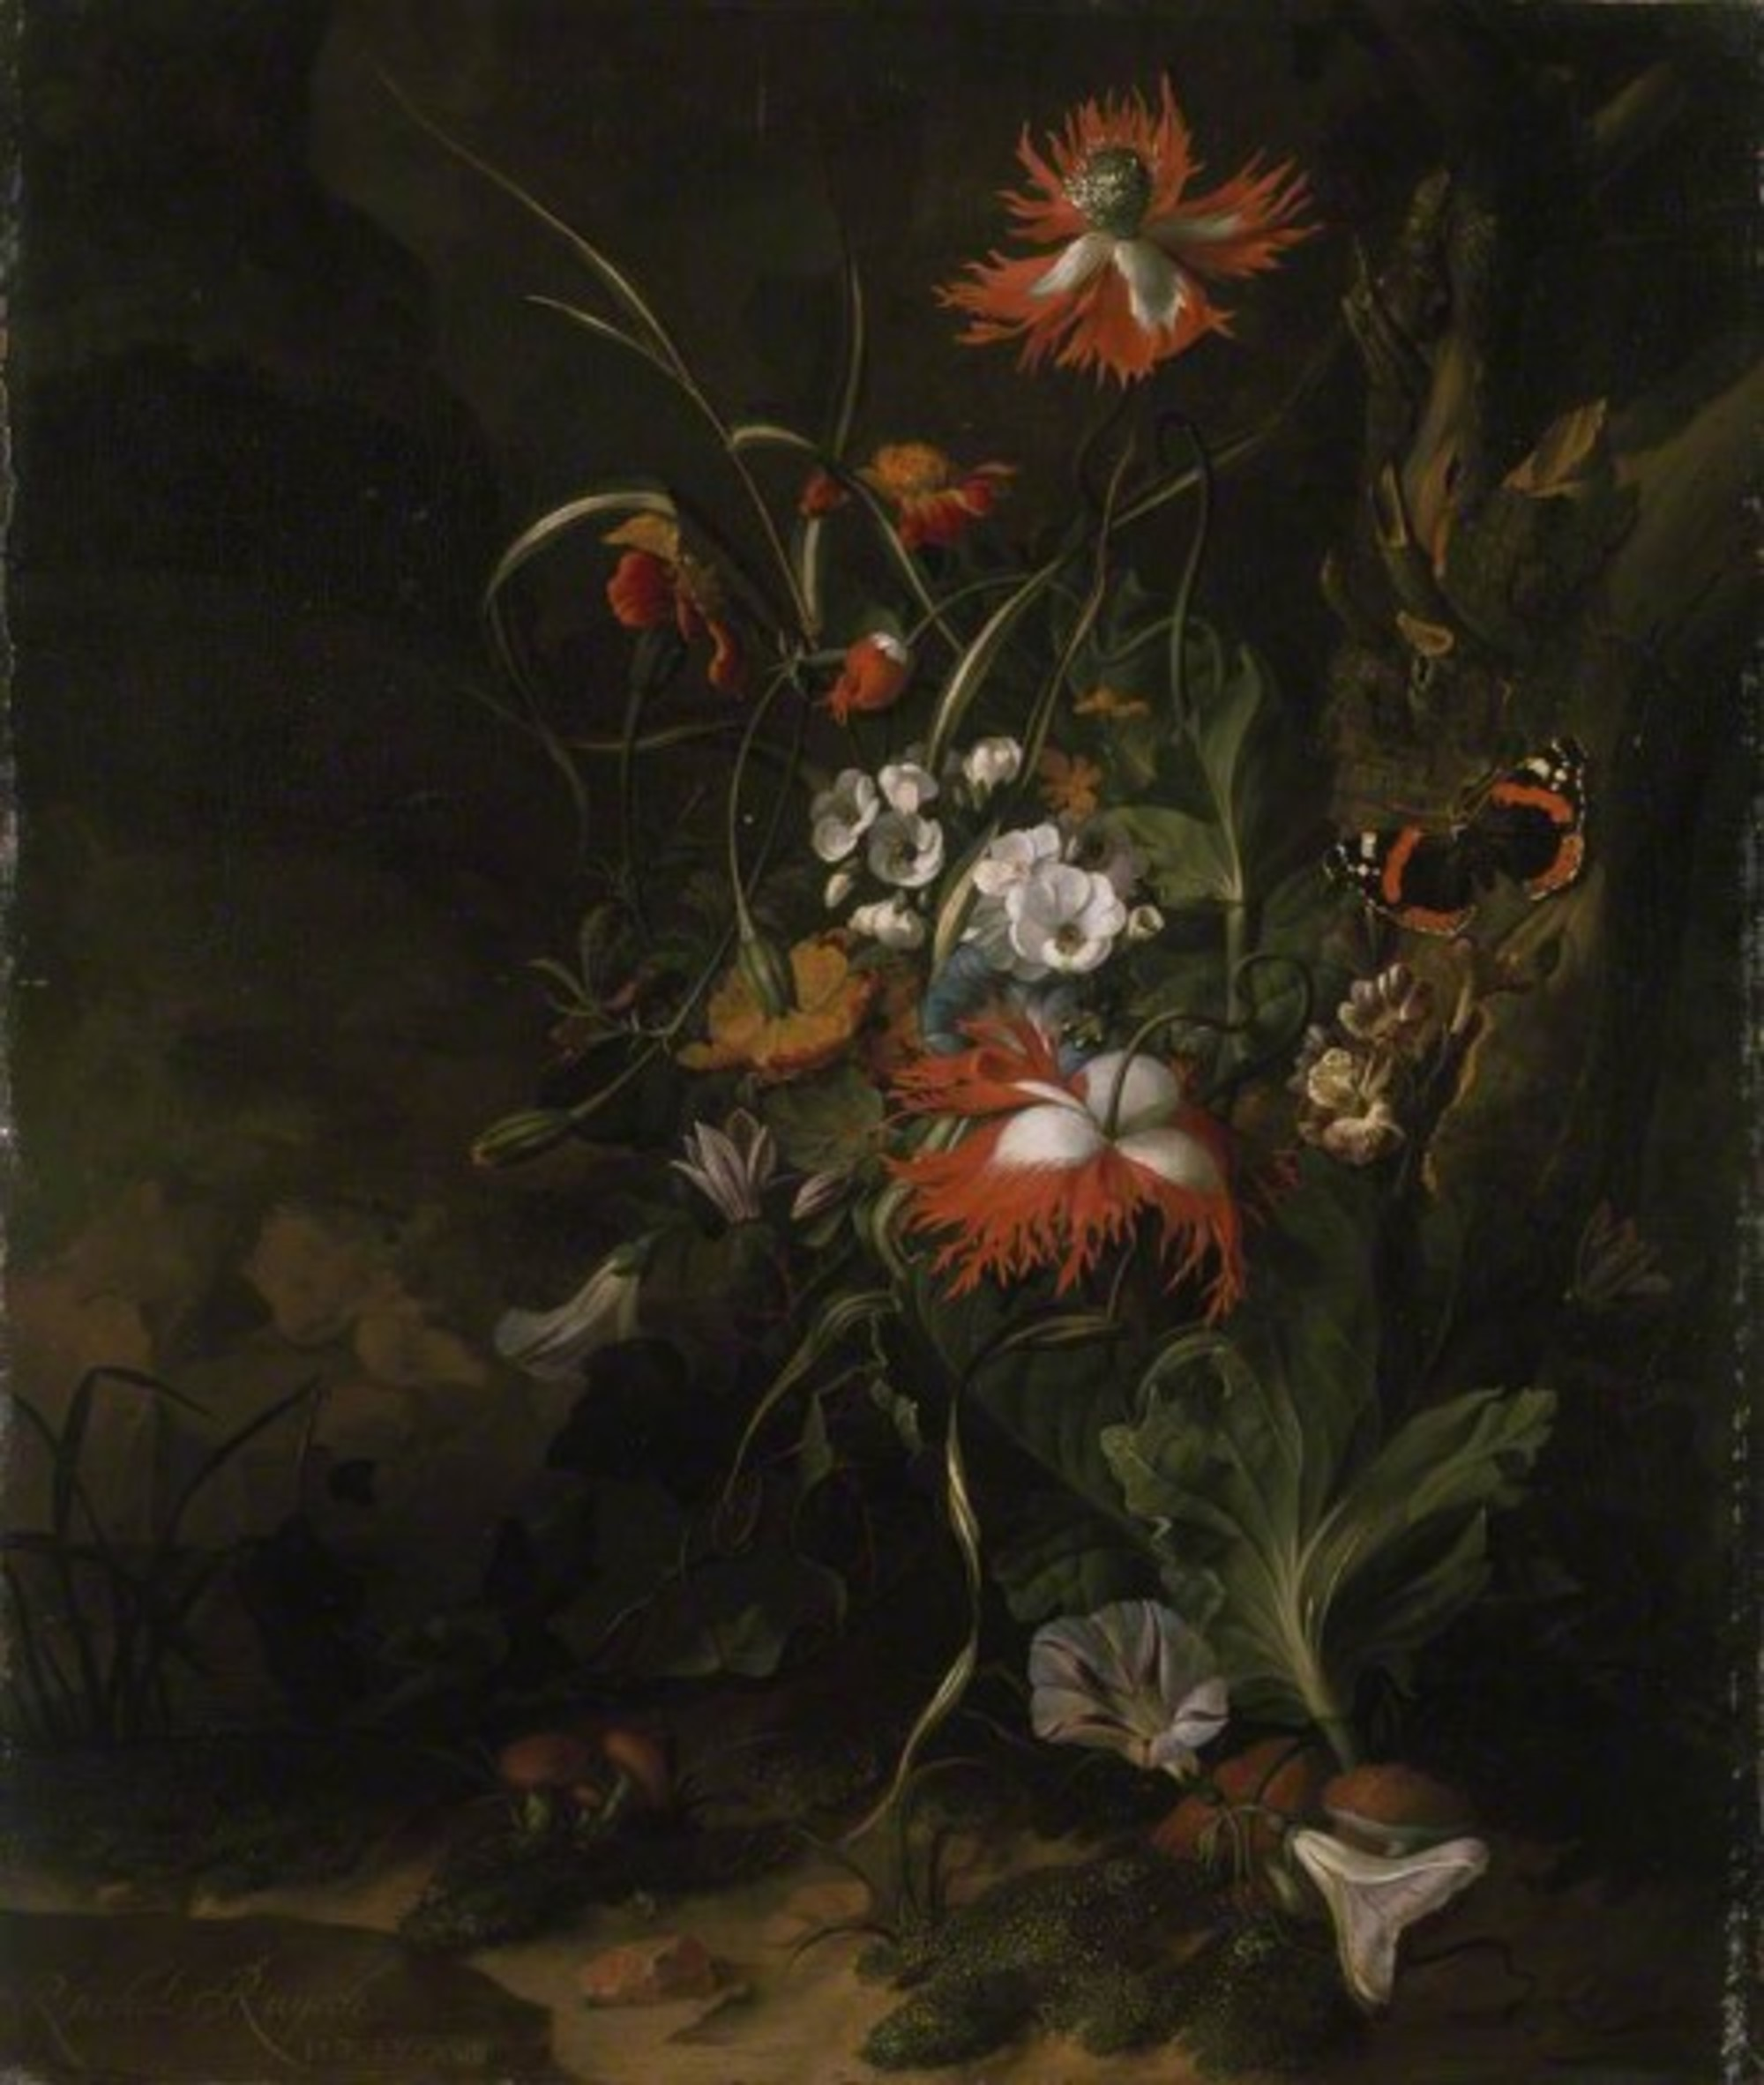 Rachel-Rutsch---A-Forest-Floor-Still-Life-of-Flowers-ASH-ASHM-WA1940-2-64.jpg